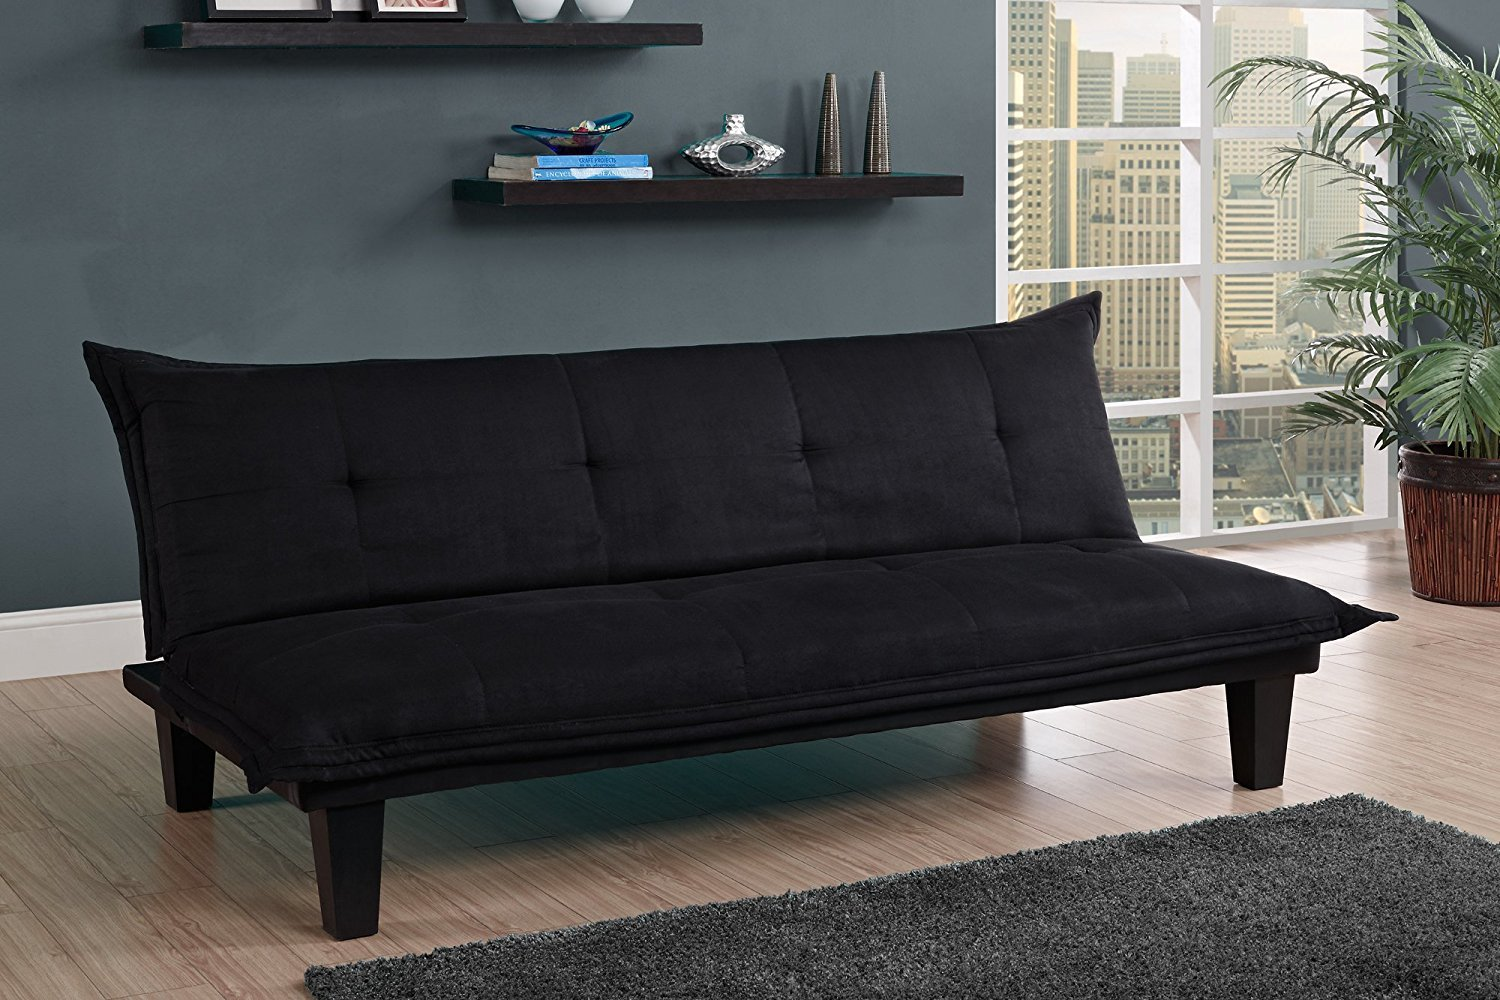 Black Soft Futon with Wood Legs